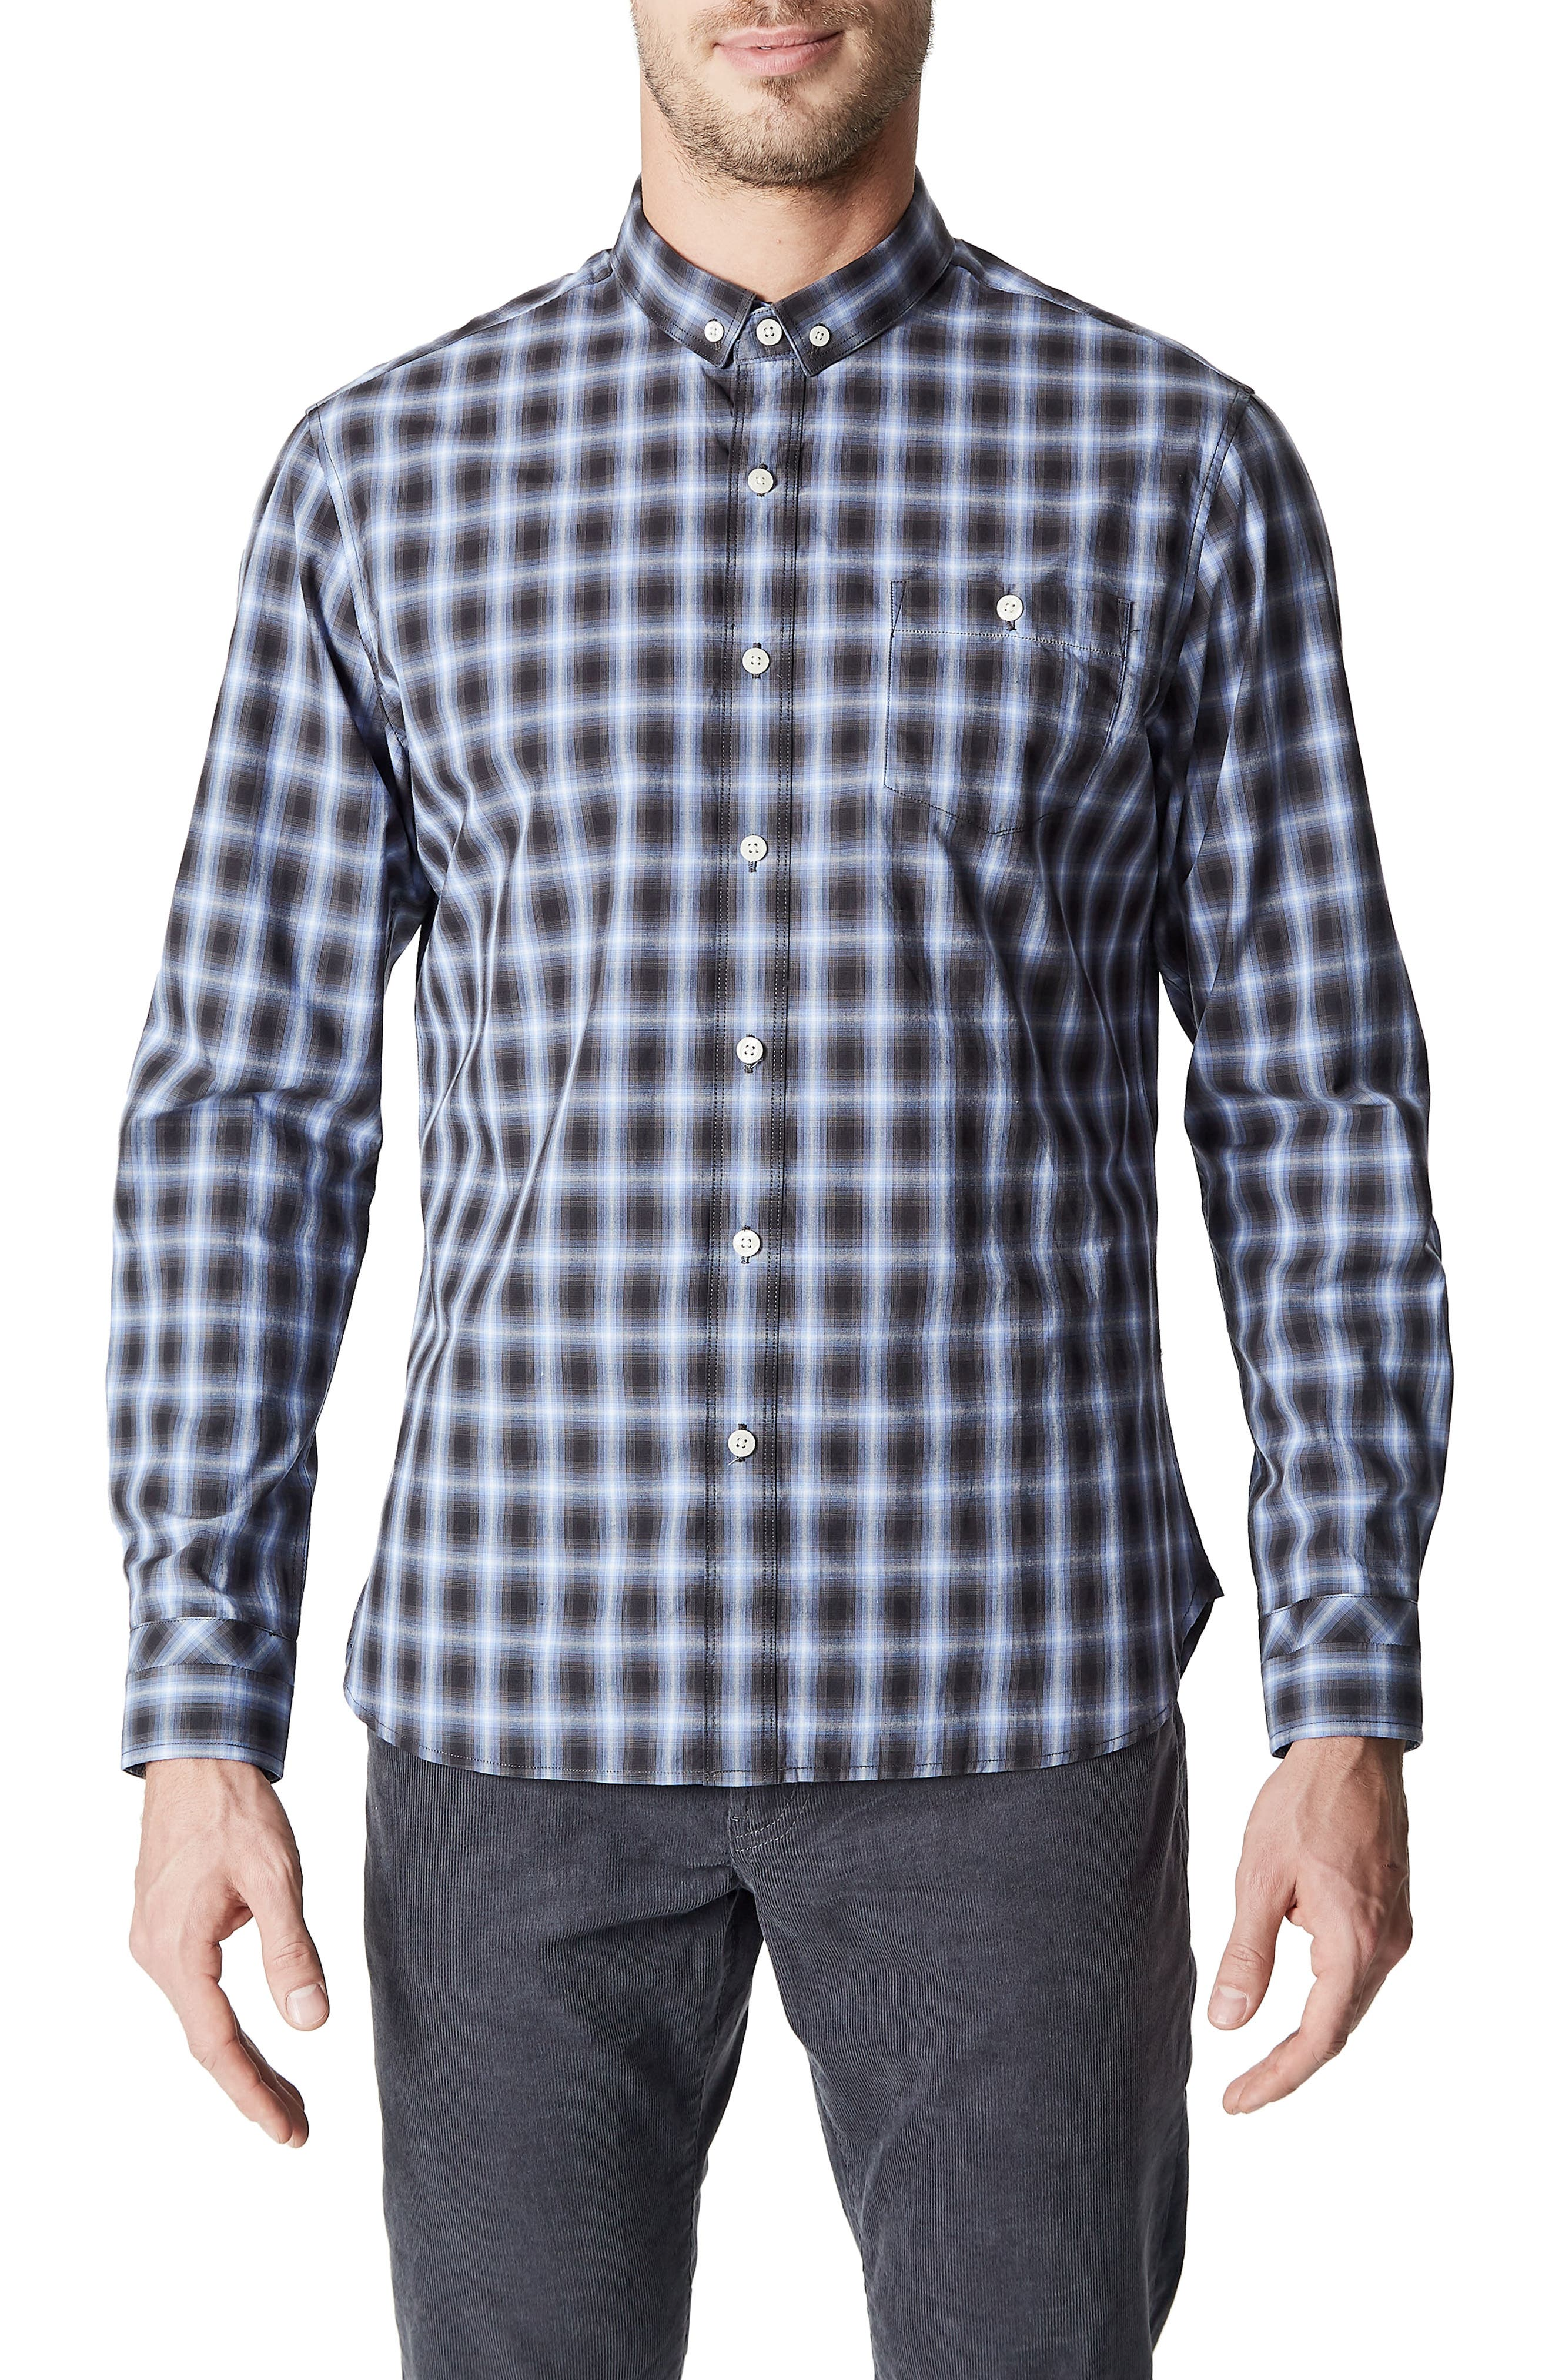 Higher Ground Woven Shirt,                         Main,                         color, Blue